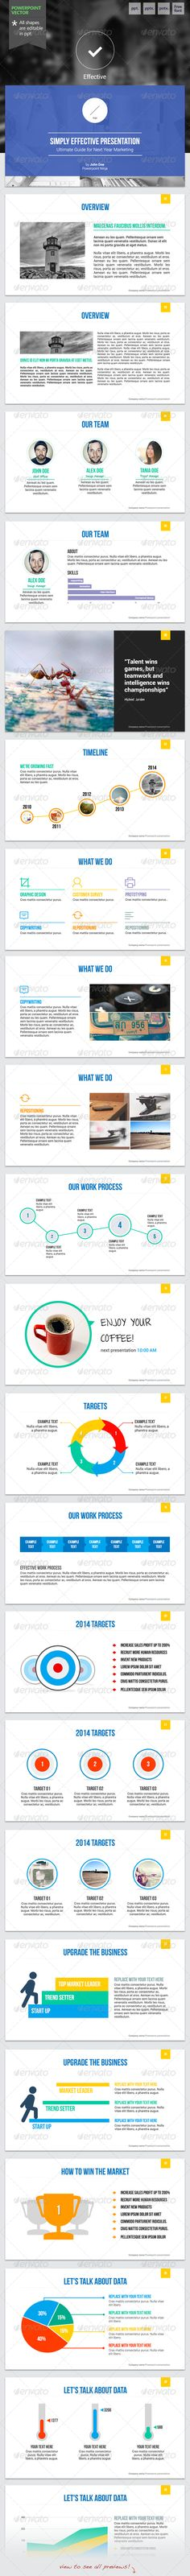 Effective 2 - Powerpoint Template  #GraphicRiver              Impress your audience with clean, modern, and professional presentation!.   This product designed to shape your ideas into effective visual comunication. All objects are editable in powerpoint, no need another additional software to change color, size, etc. Photos are replaced with placeholder   Features:   Fully editable in powerpoint  Available in 3 flavors!: White, light grey, and textured grey.  Easy drag and drop to